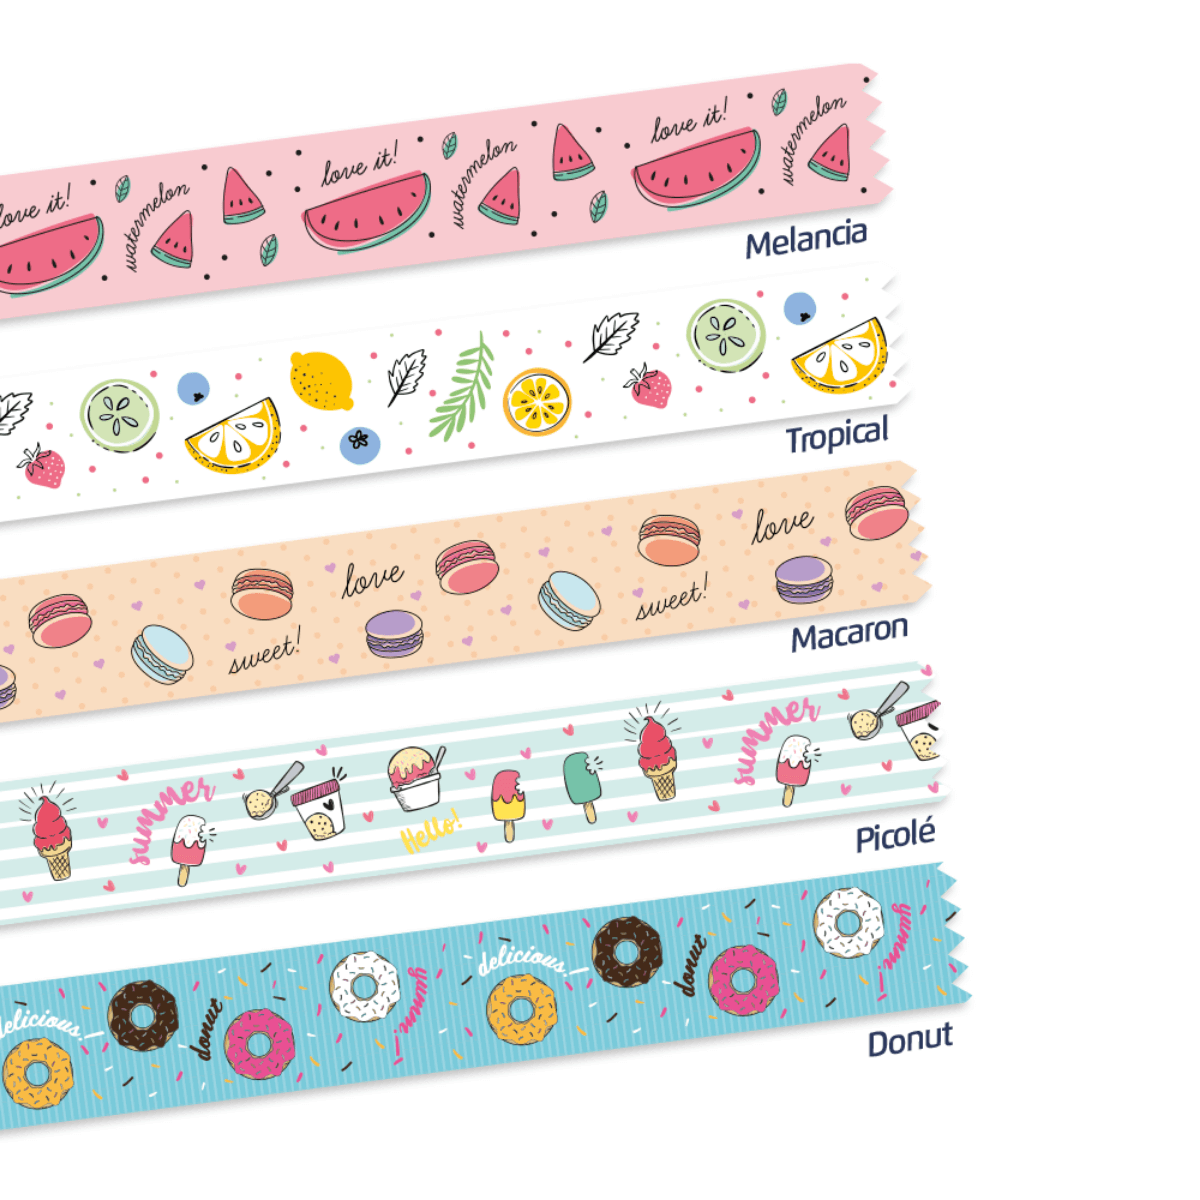 Washi Tape Food Trends - Leoarte